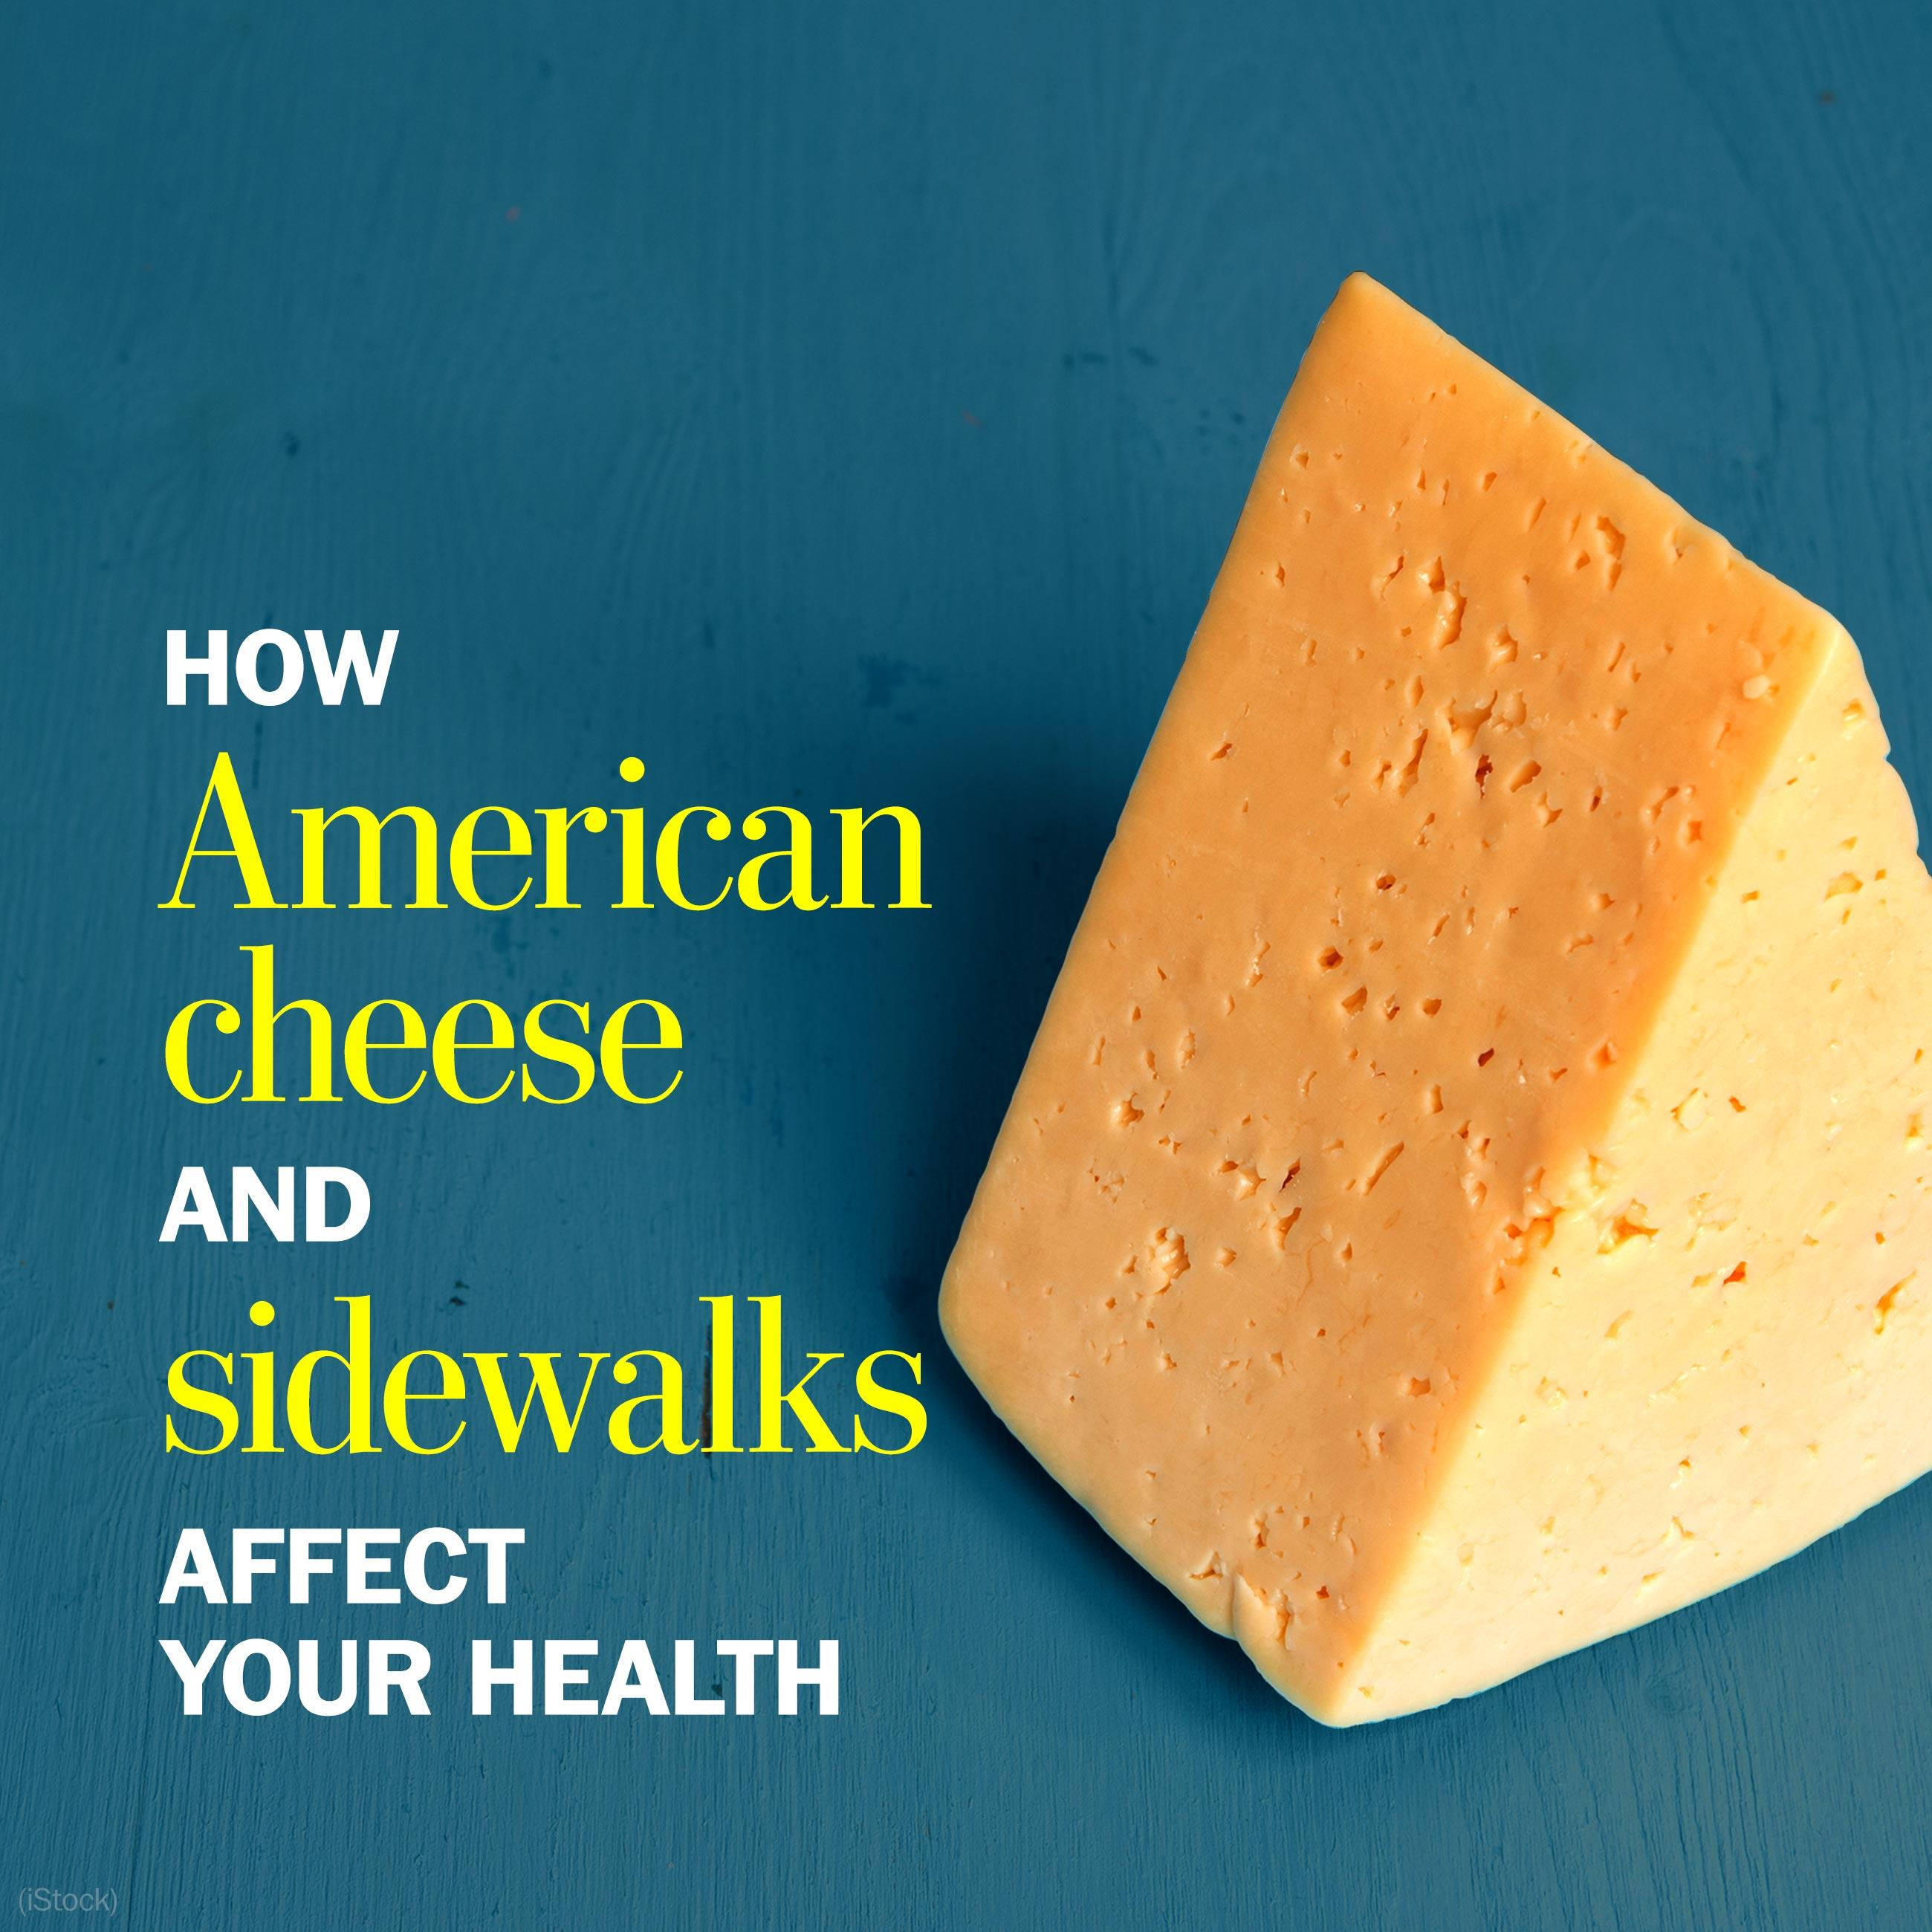 American cheese, sidewalks and chairs have a connection that may surprise you